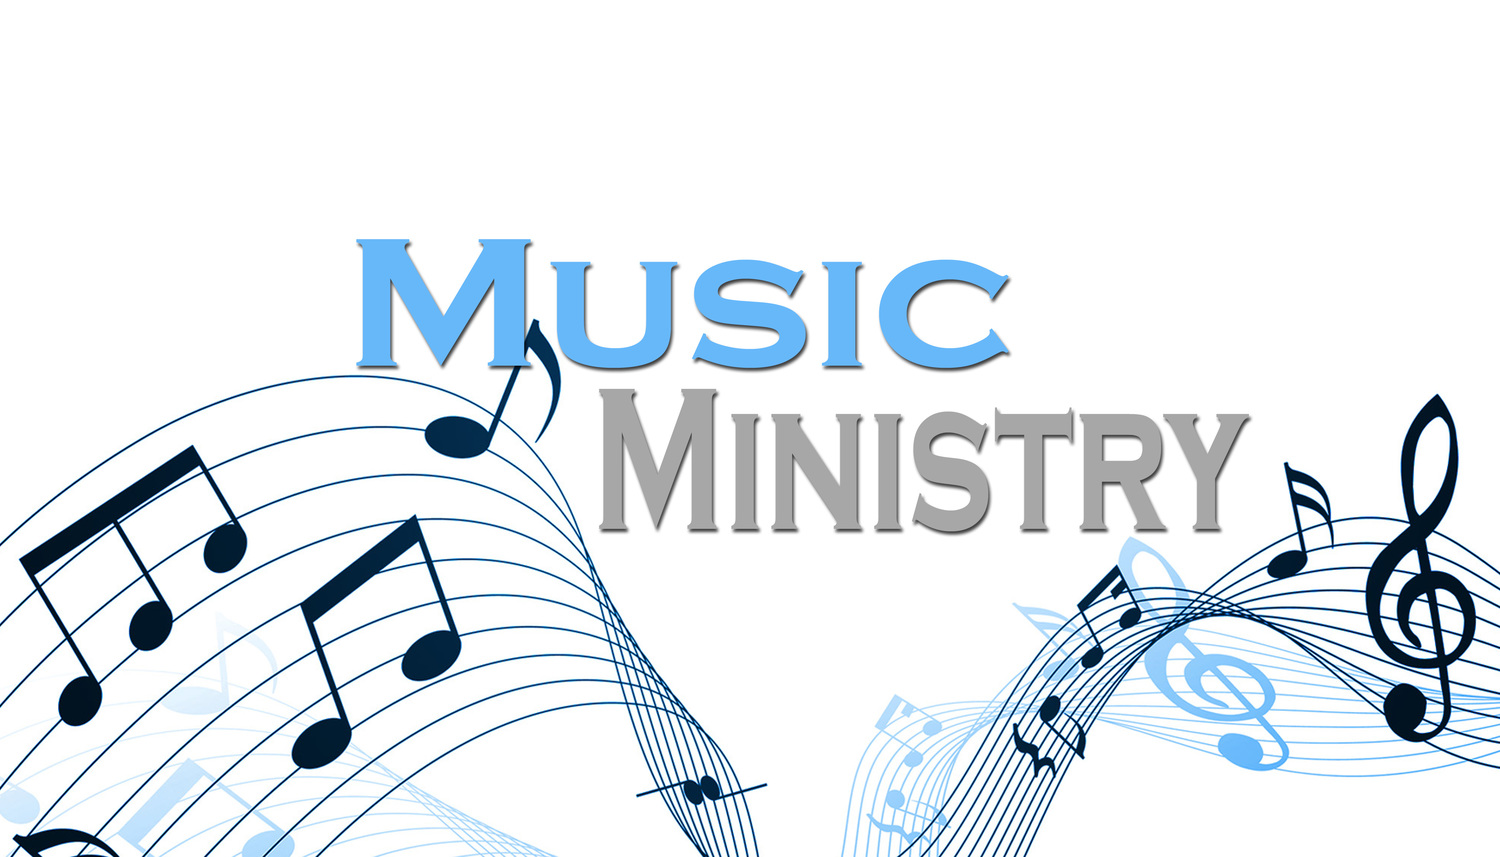 Choir clipart music ministry, Choir music ministry.